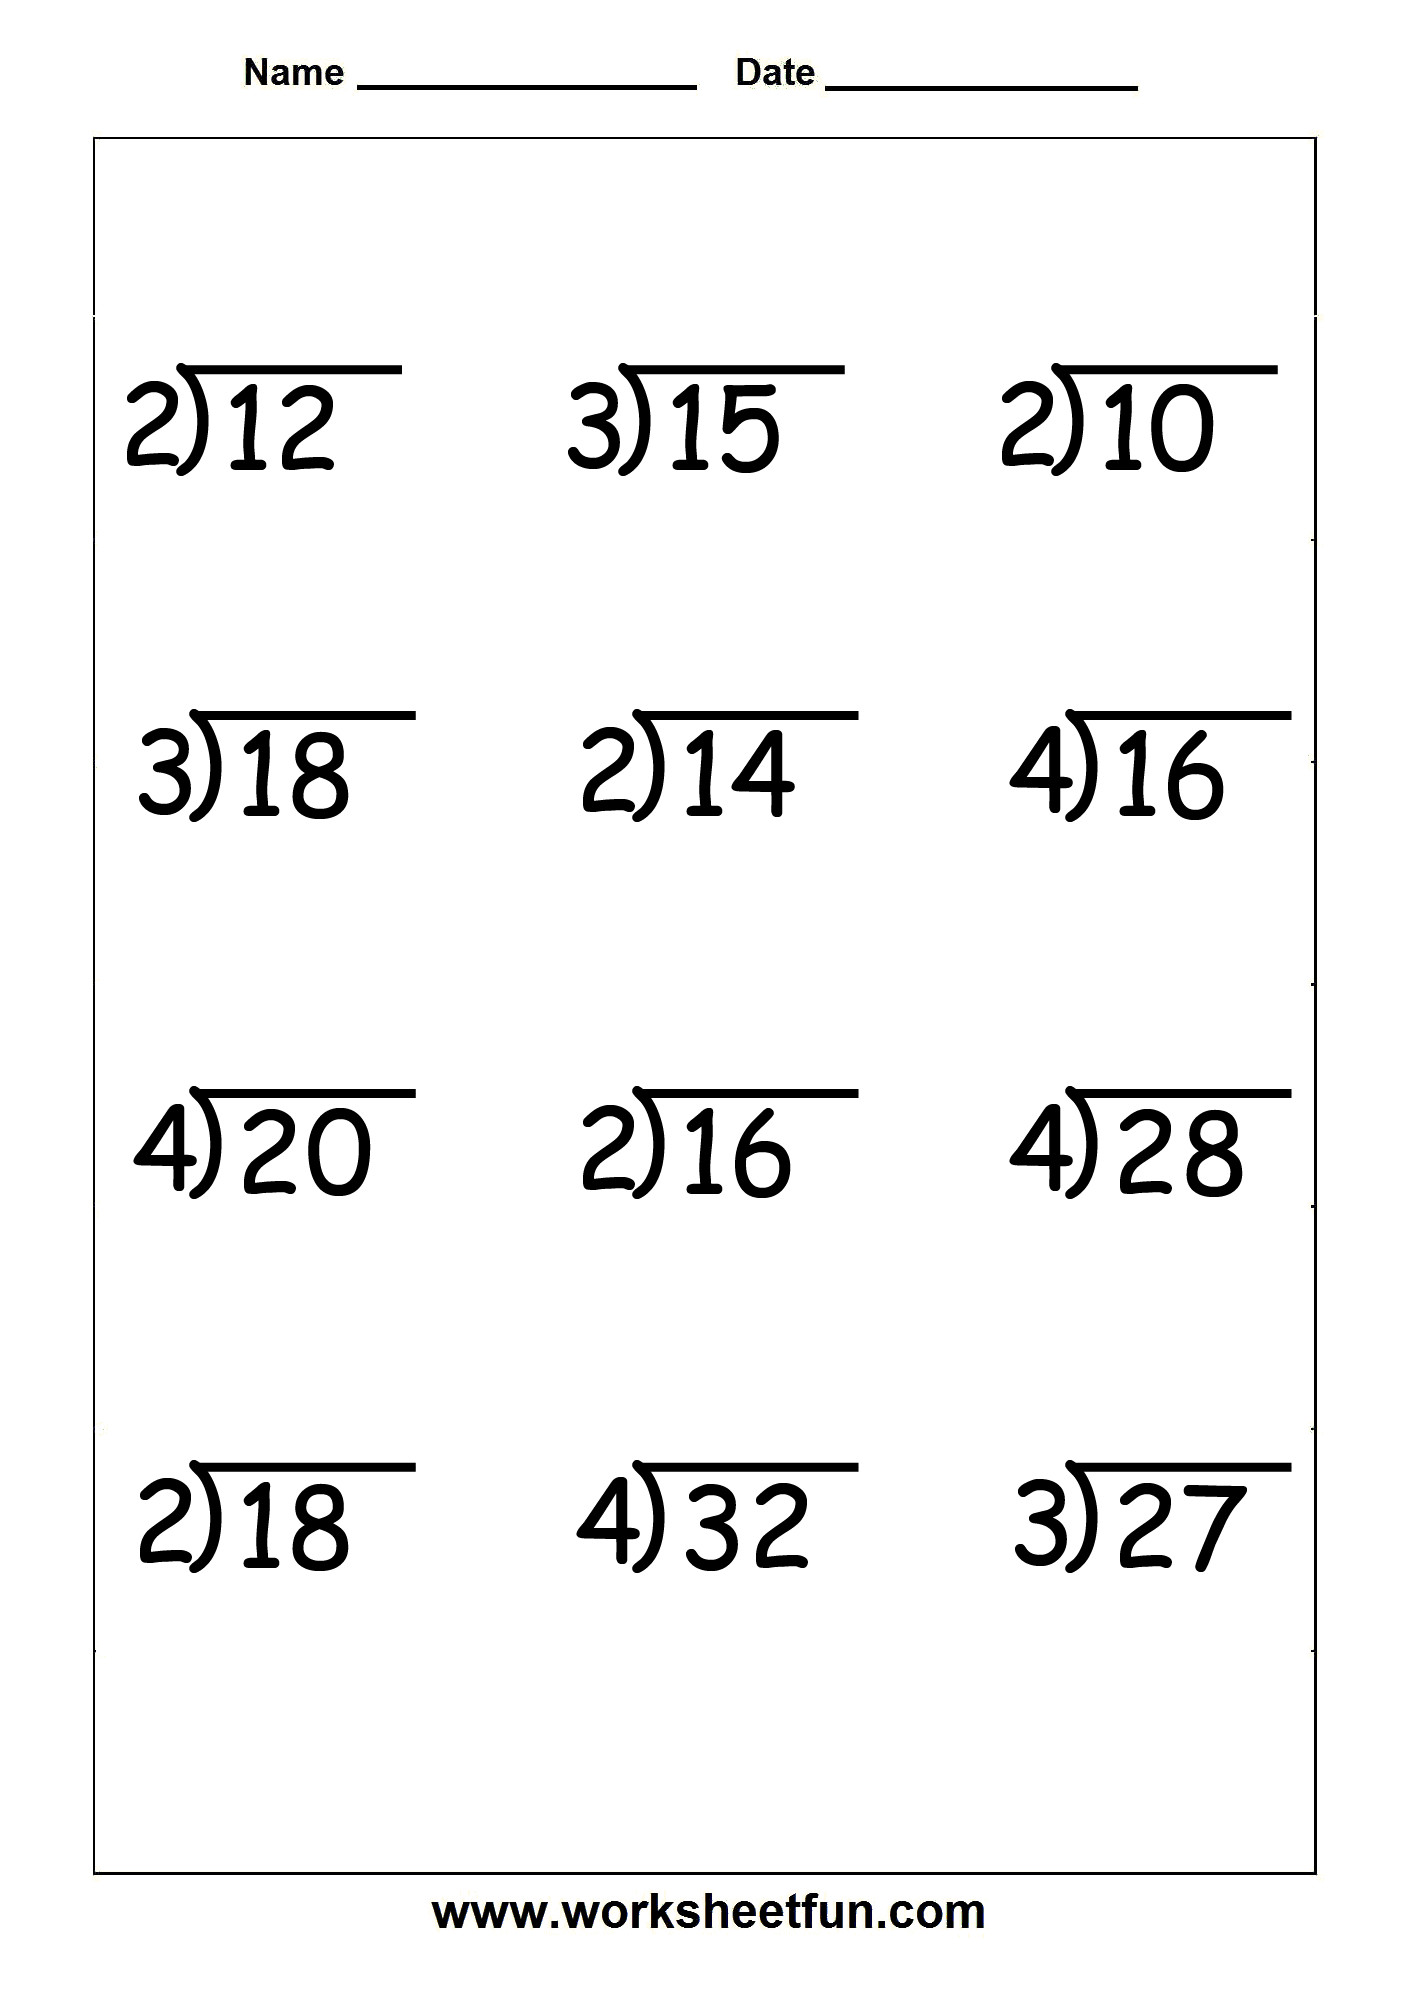 hight resolution of 5 Free Math Worksheets Third Grade 3 Word Problems Mixed -  apocalomegaproductions.com